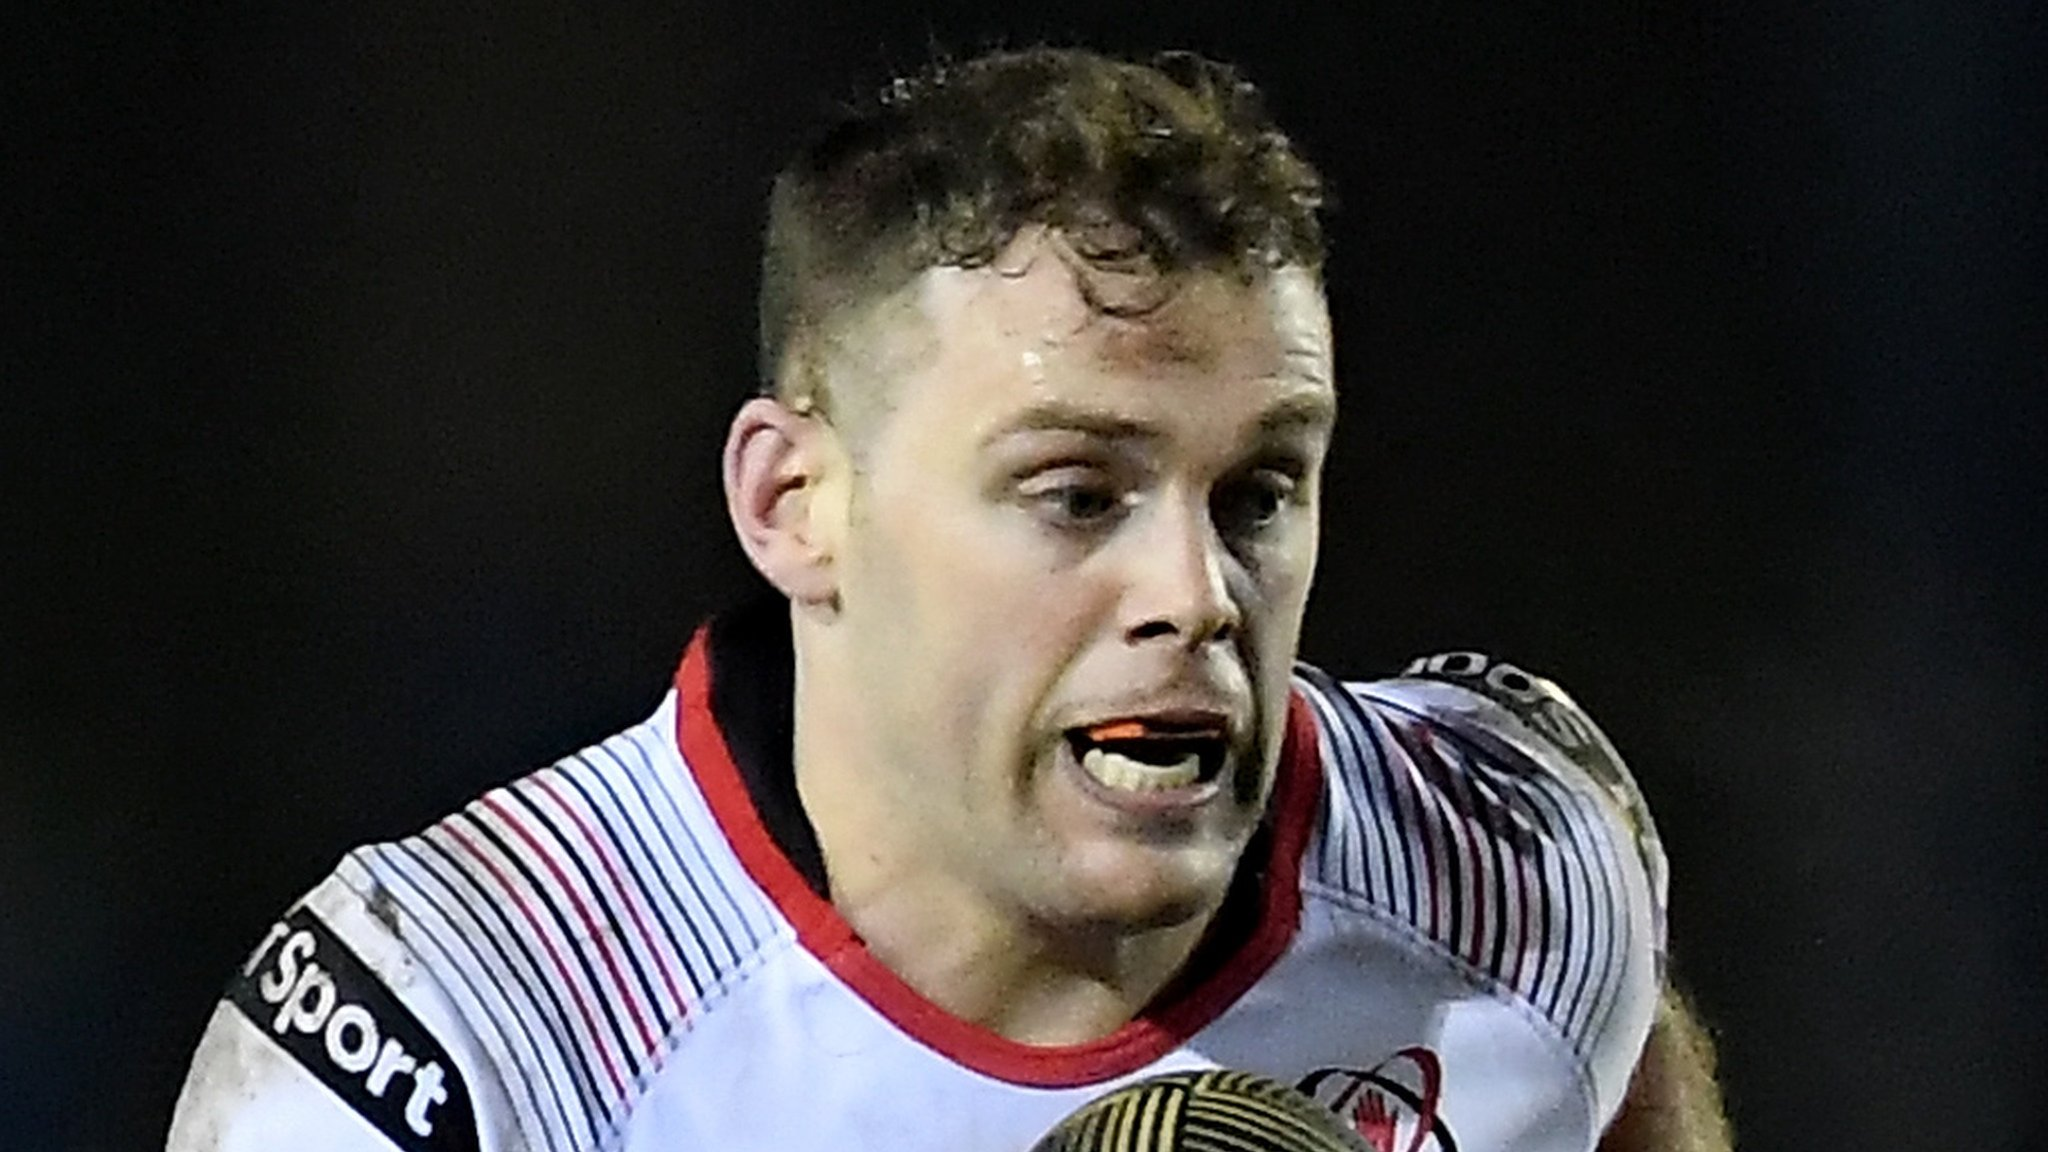 Ulster and Ireland centre Darren Cave considering retirement at the end of the season